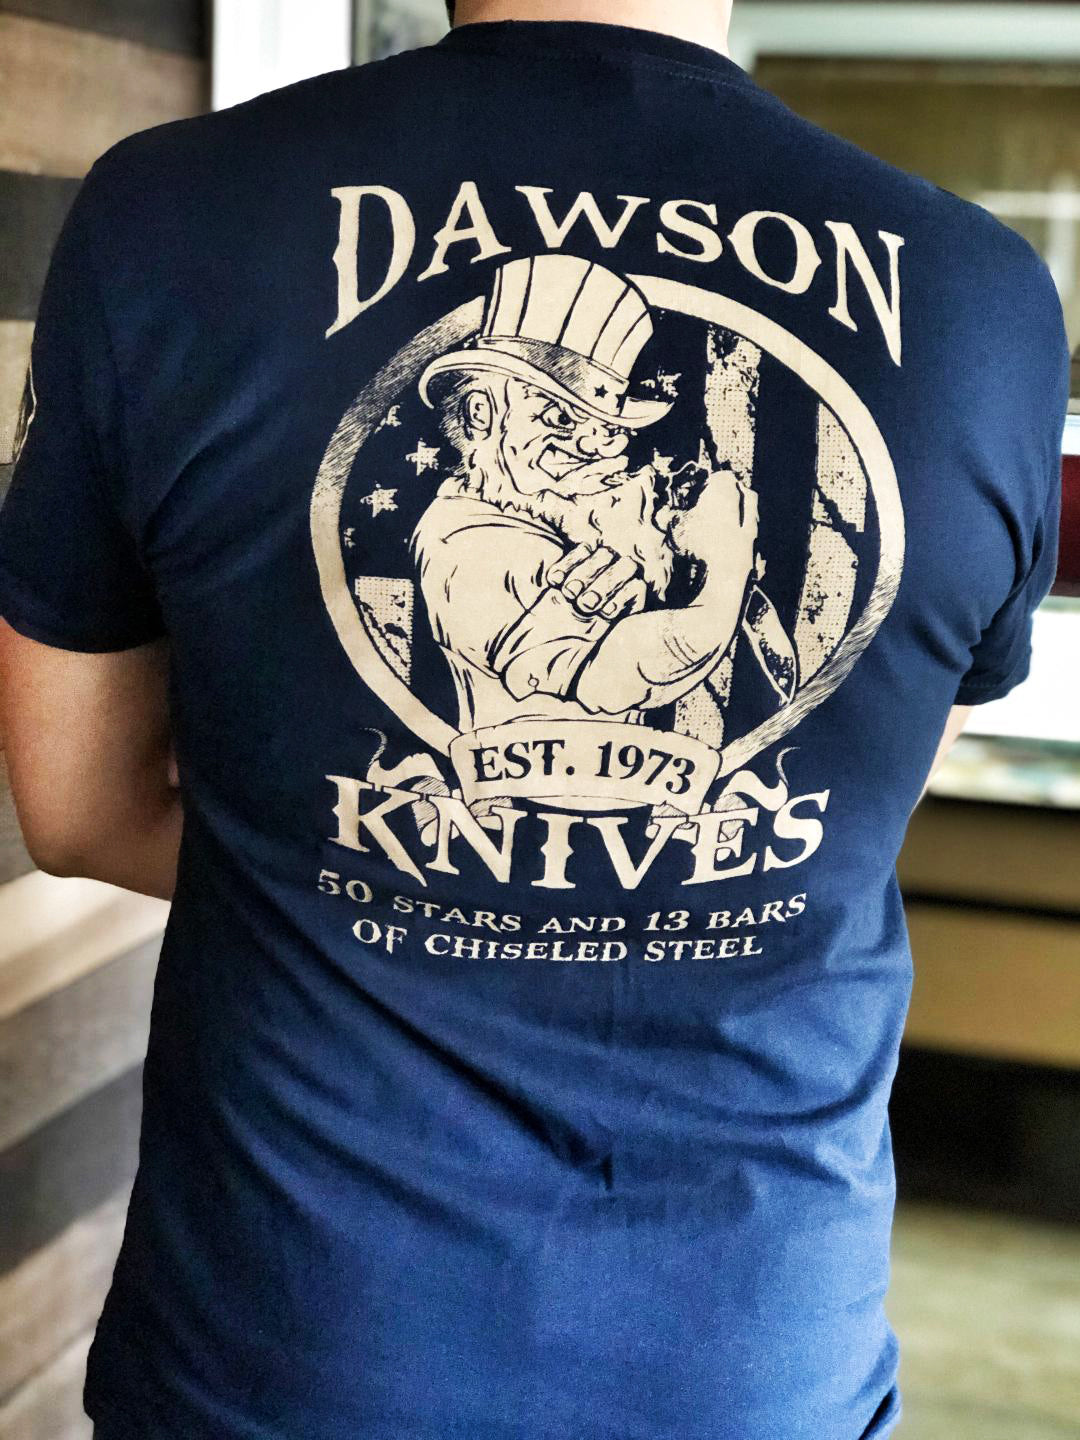 NEW! Dawson Knives Tee Shirt